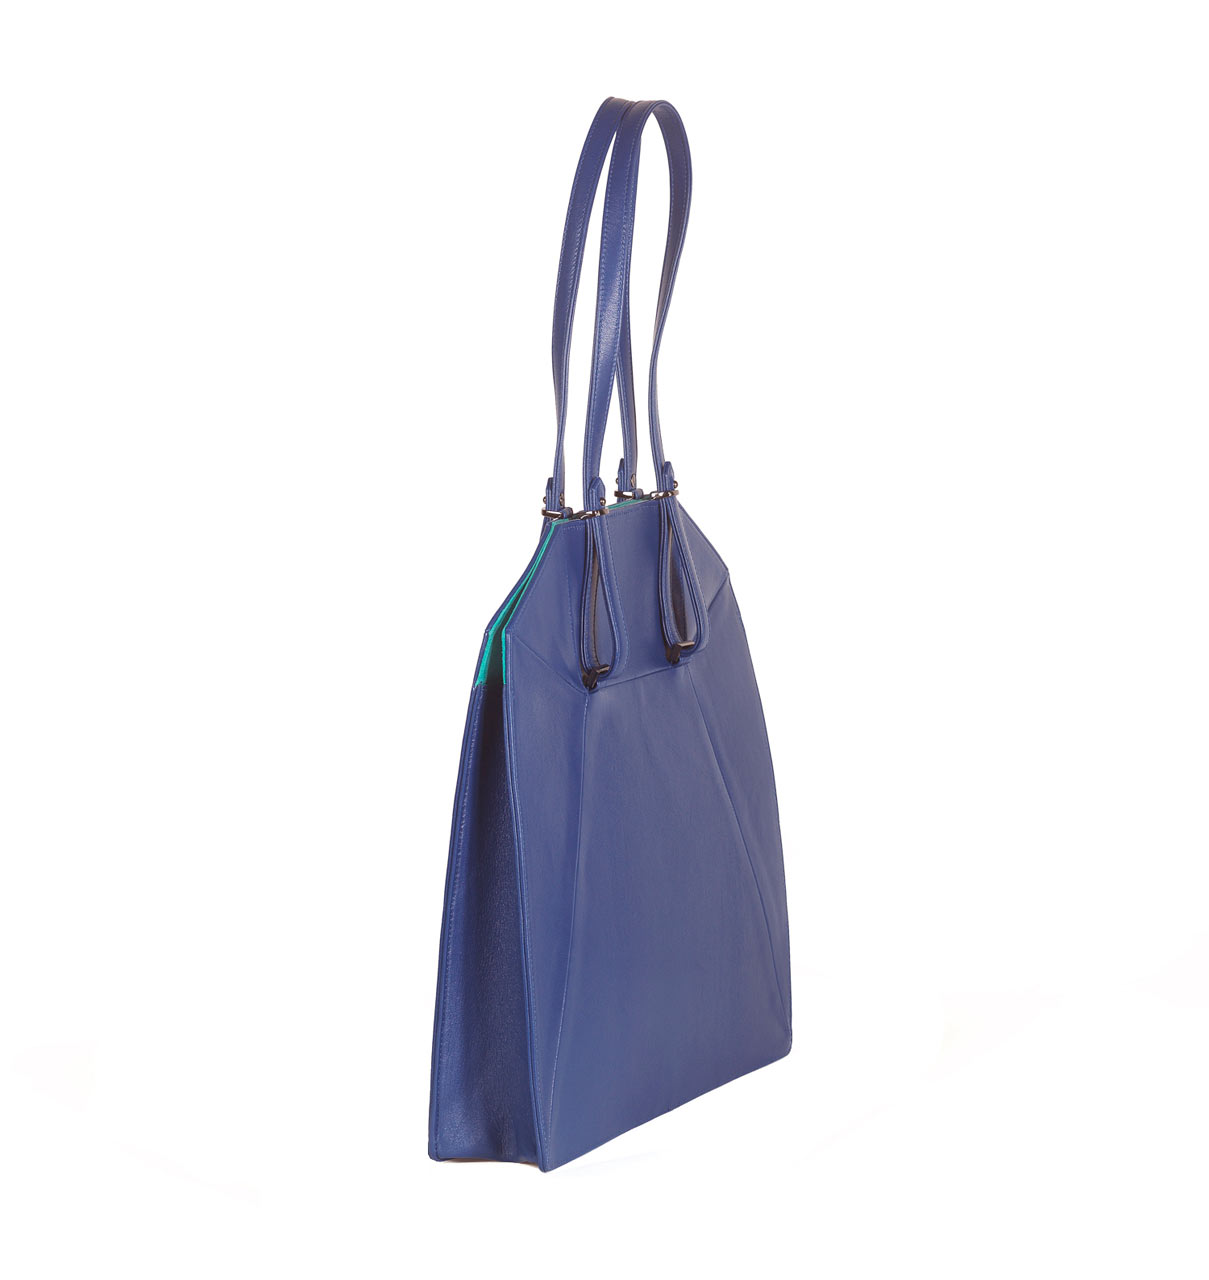 Imago-A-Prism-Bags-13-Tote-Royal-Blue